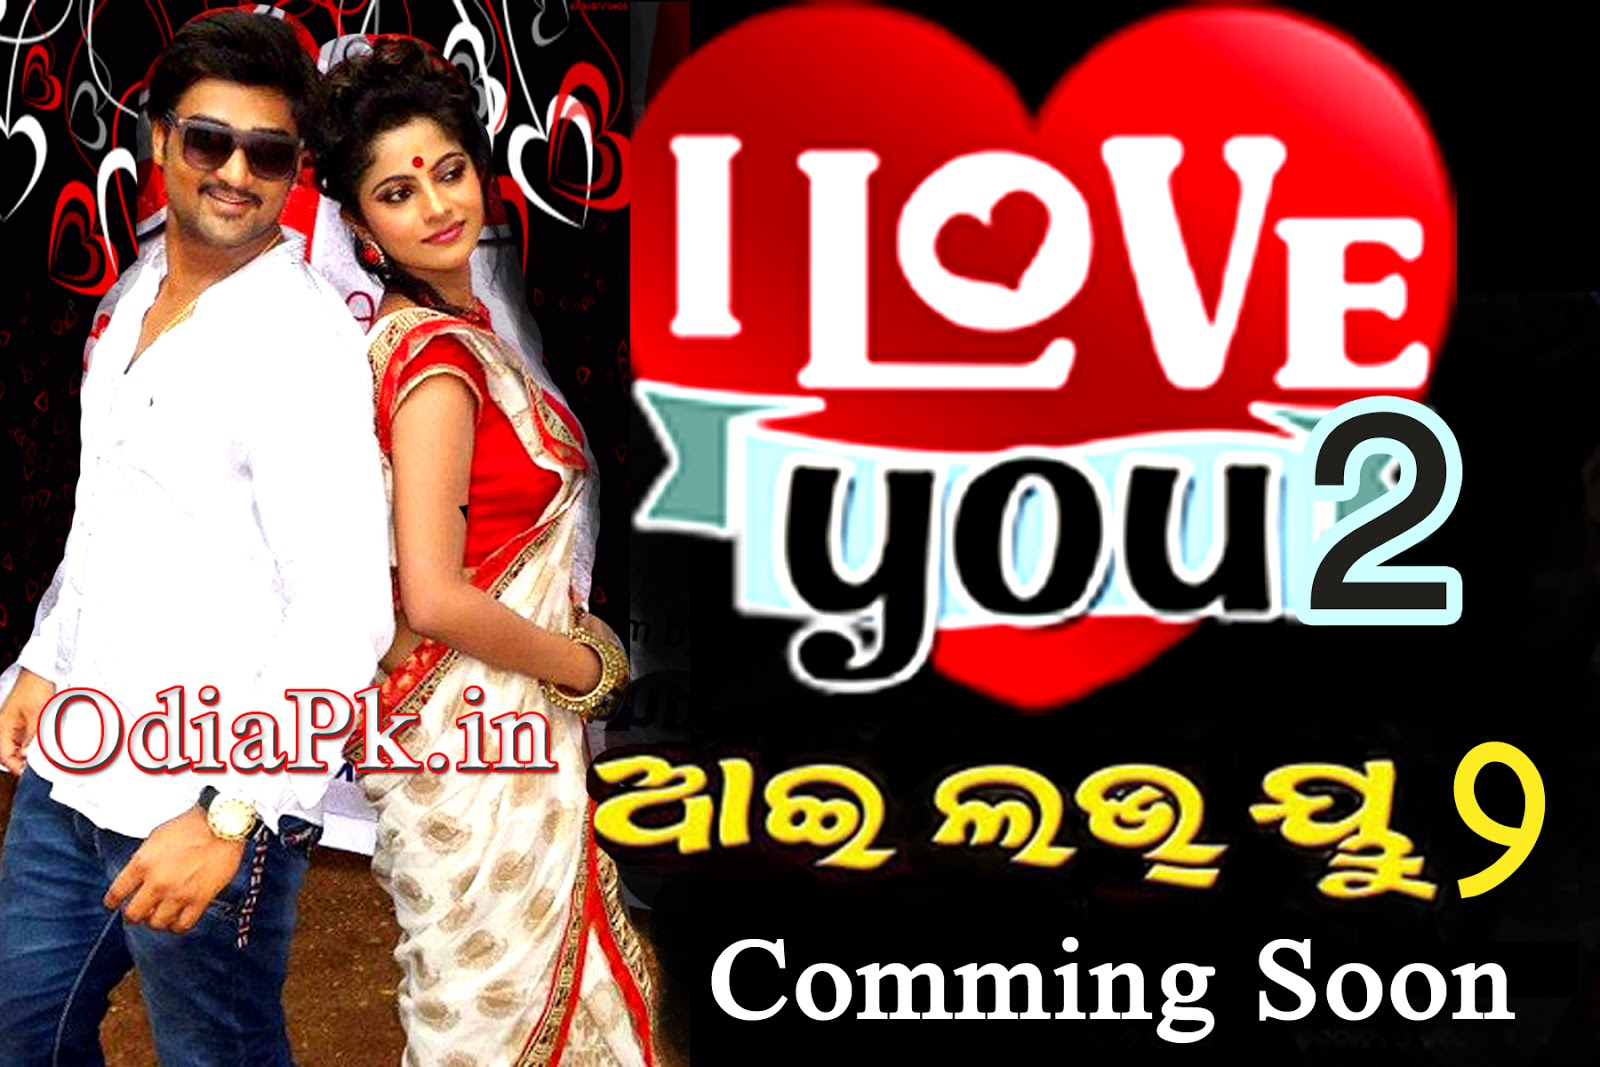 I Love You 2 2016 New Odia Film Video Song,Cast,Crew,Wallpaper Movie Details  Odia -6618